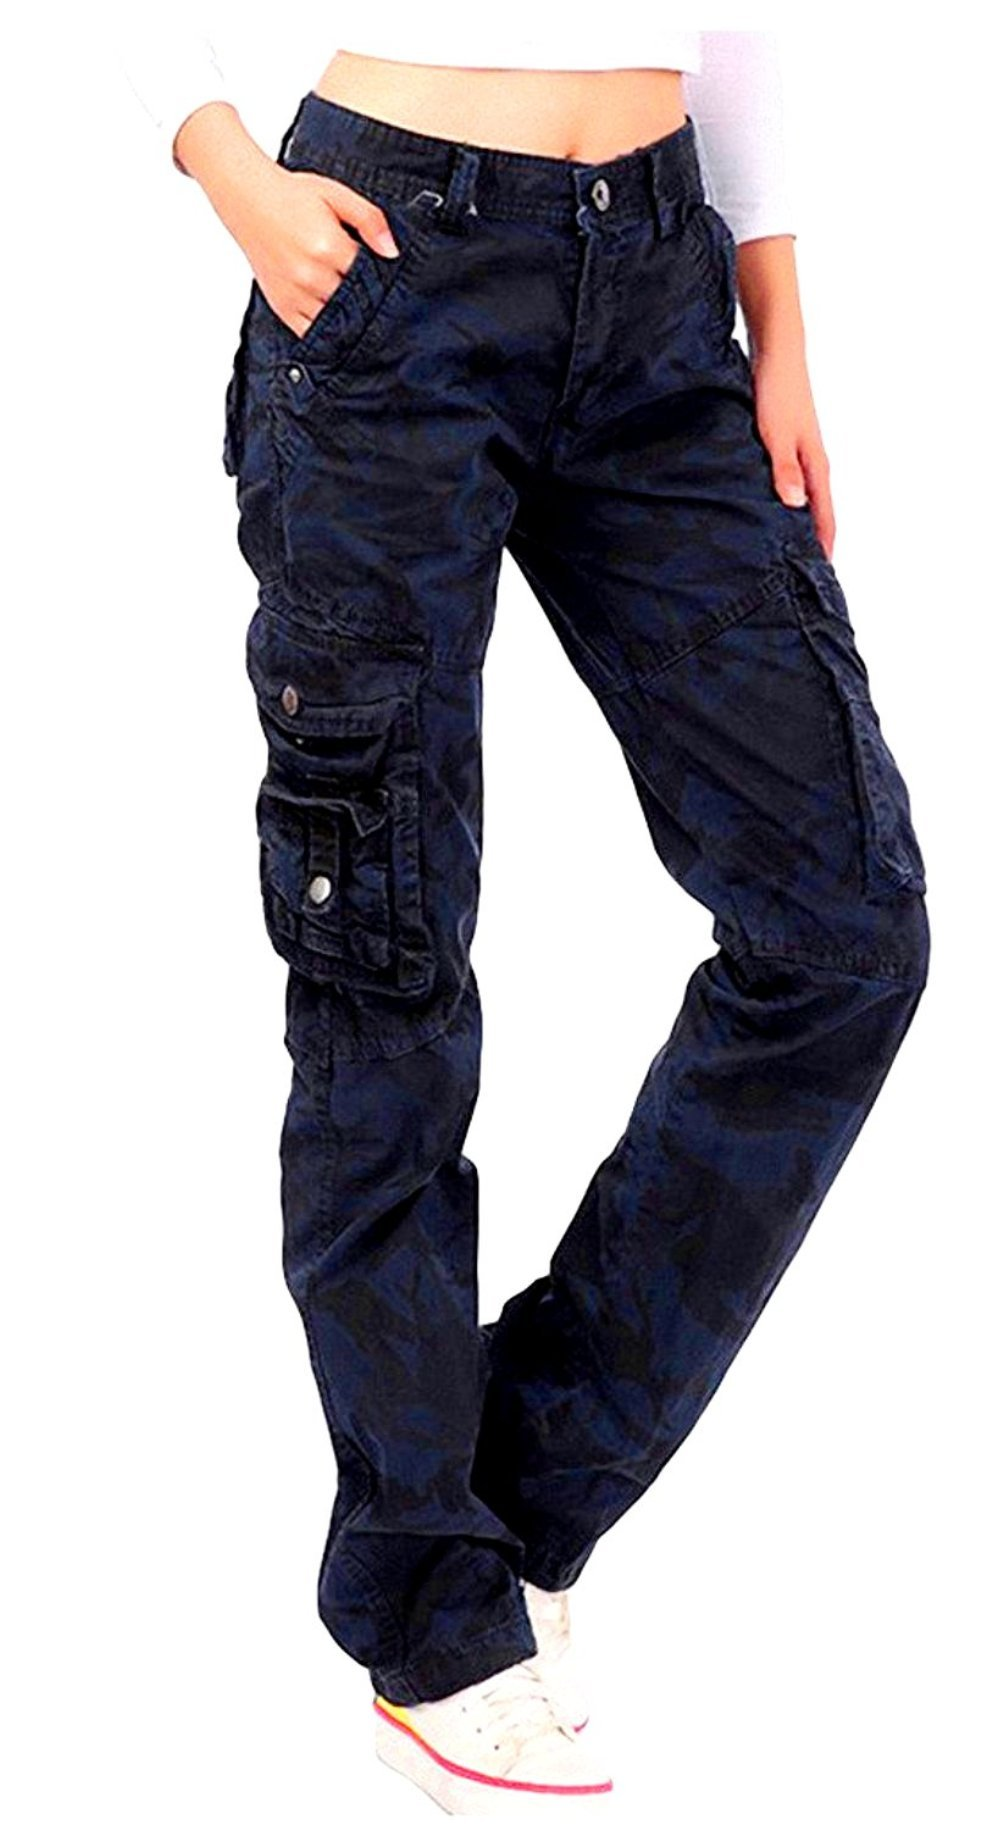 JEANS FOR LOVE Womens Cargo Utility Work Hiking Army Military Multi Pockets Combat Casual Pants (XL, Navy Blue)